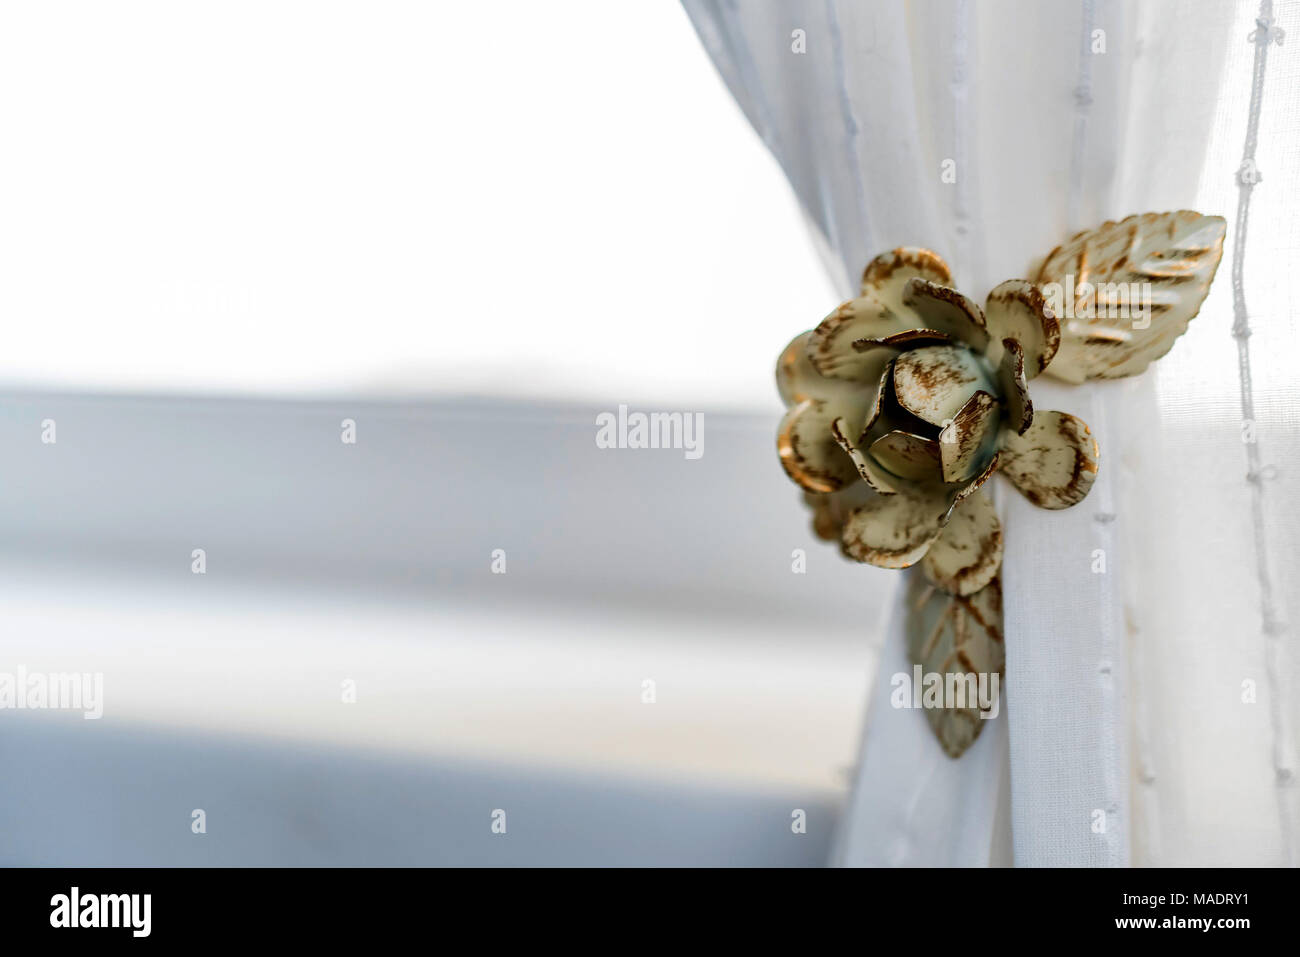 Decorative curtain clip in shape of flower - Stock Image